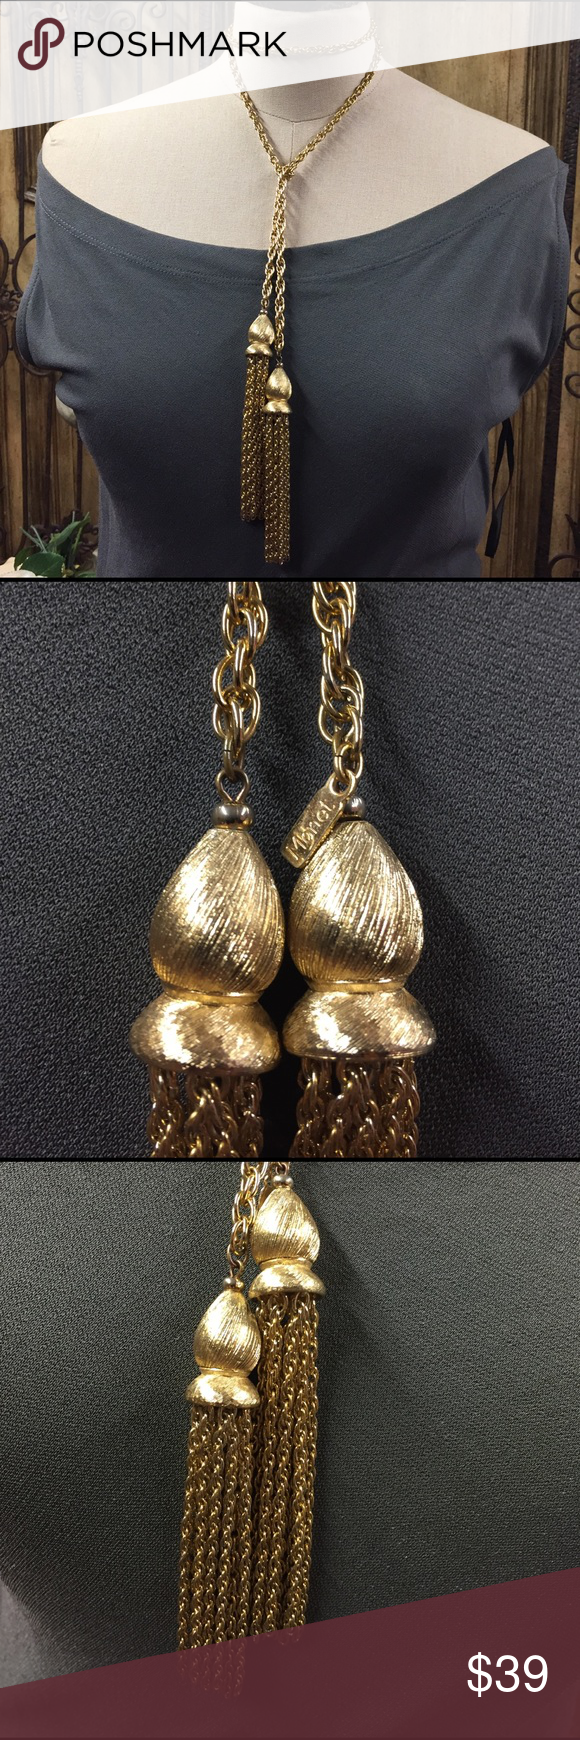 Vintage Monet goldtone long tassel necklace. Vintage Monet necklace is gorgeous. Everyone has loved this & I'm finally ready to let it go. Such elegance & class. Can be worn so many ways. In beautiful condition. Measures 44 inches long to be wrapped in so many interesting ways. A piece of vintage perfection. Monet Jewelry Necklaces